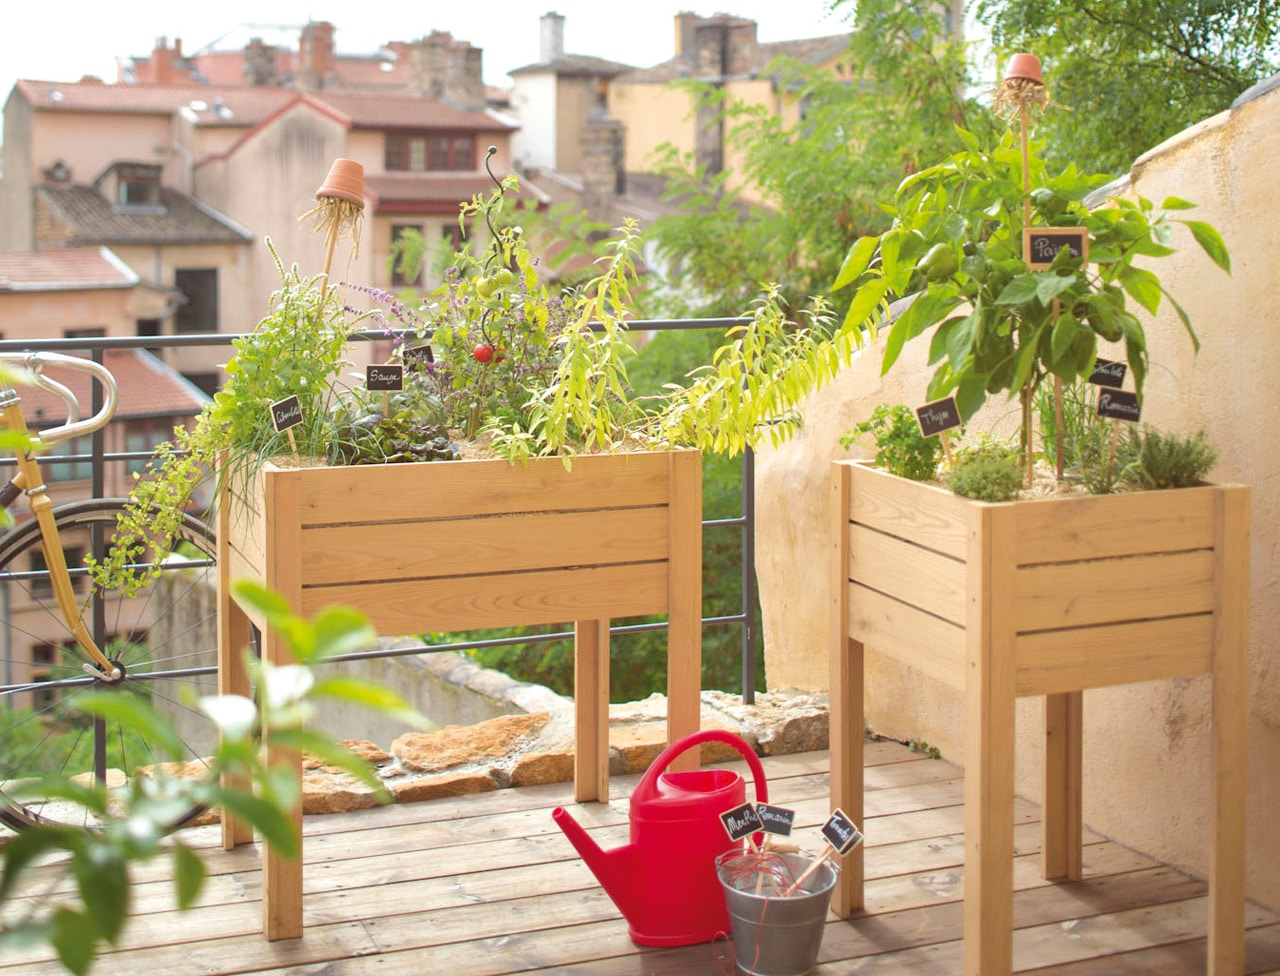 les astuces pour r aliser un potager sur son balcon. Black Bedroom Furniture Sets. Home Design Ideas